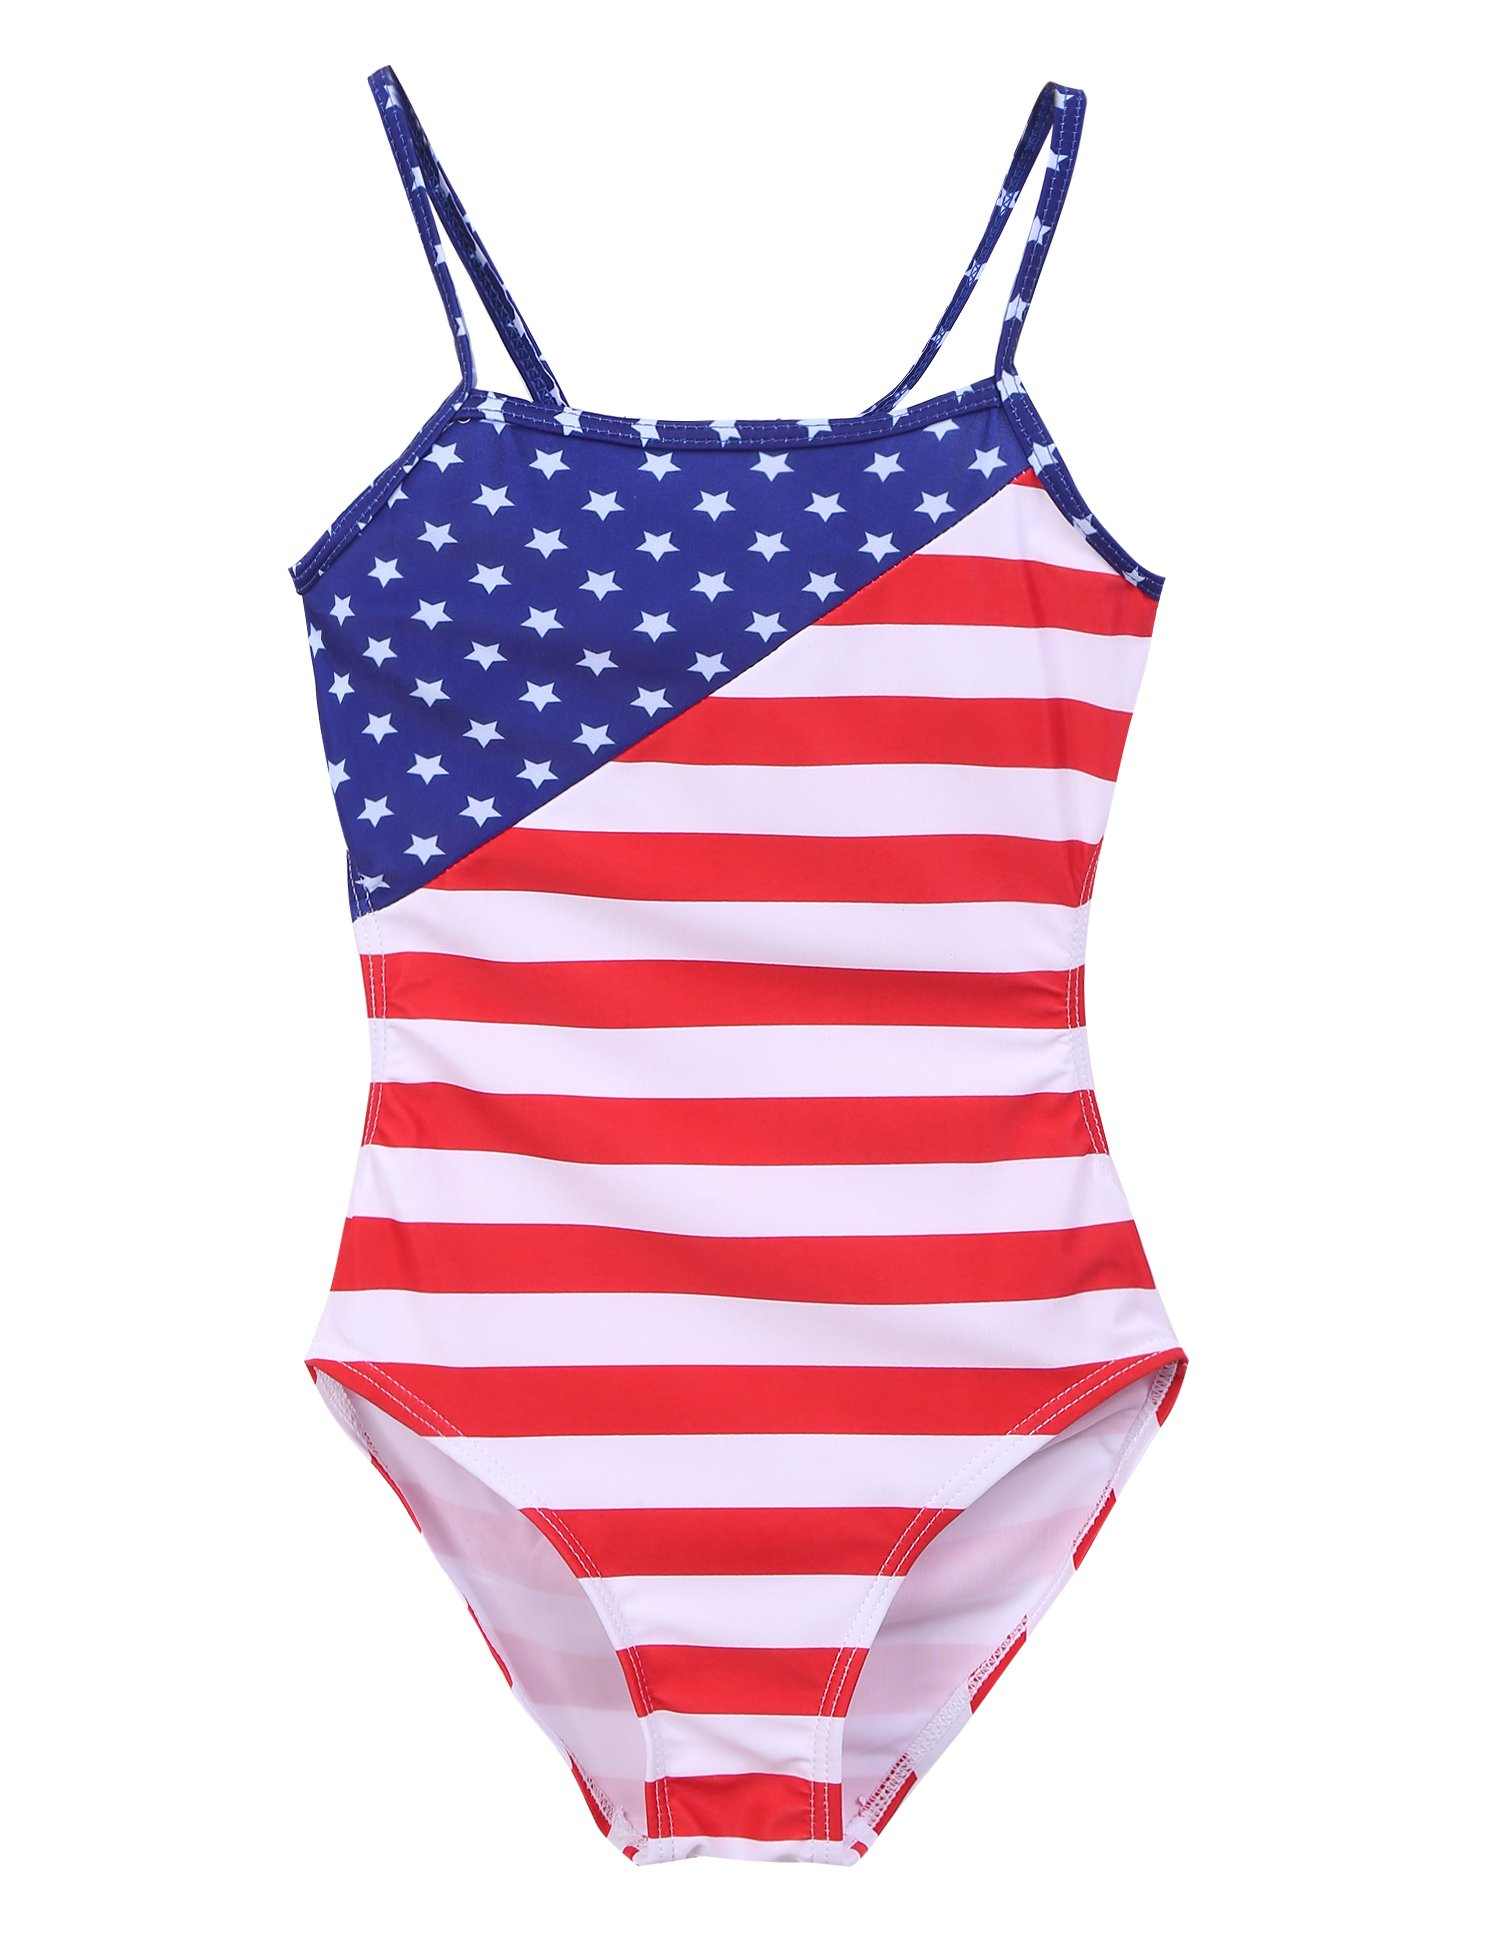 Arshiner Kids Girl's One Piece Swimsuit with Stars and Stripes,Blue, 110